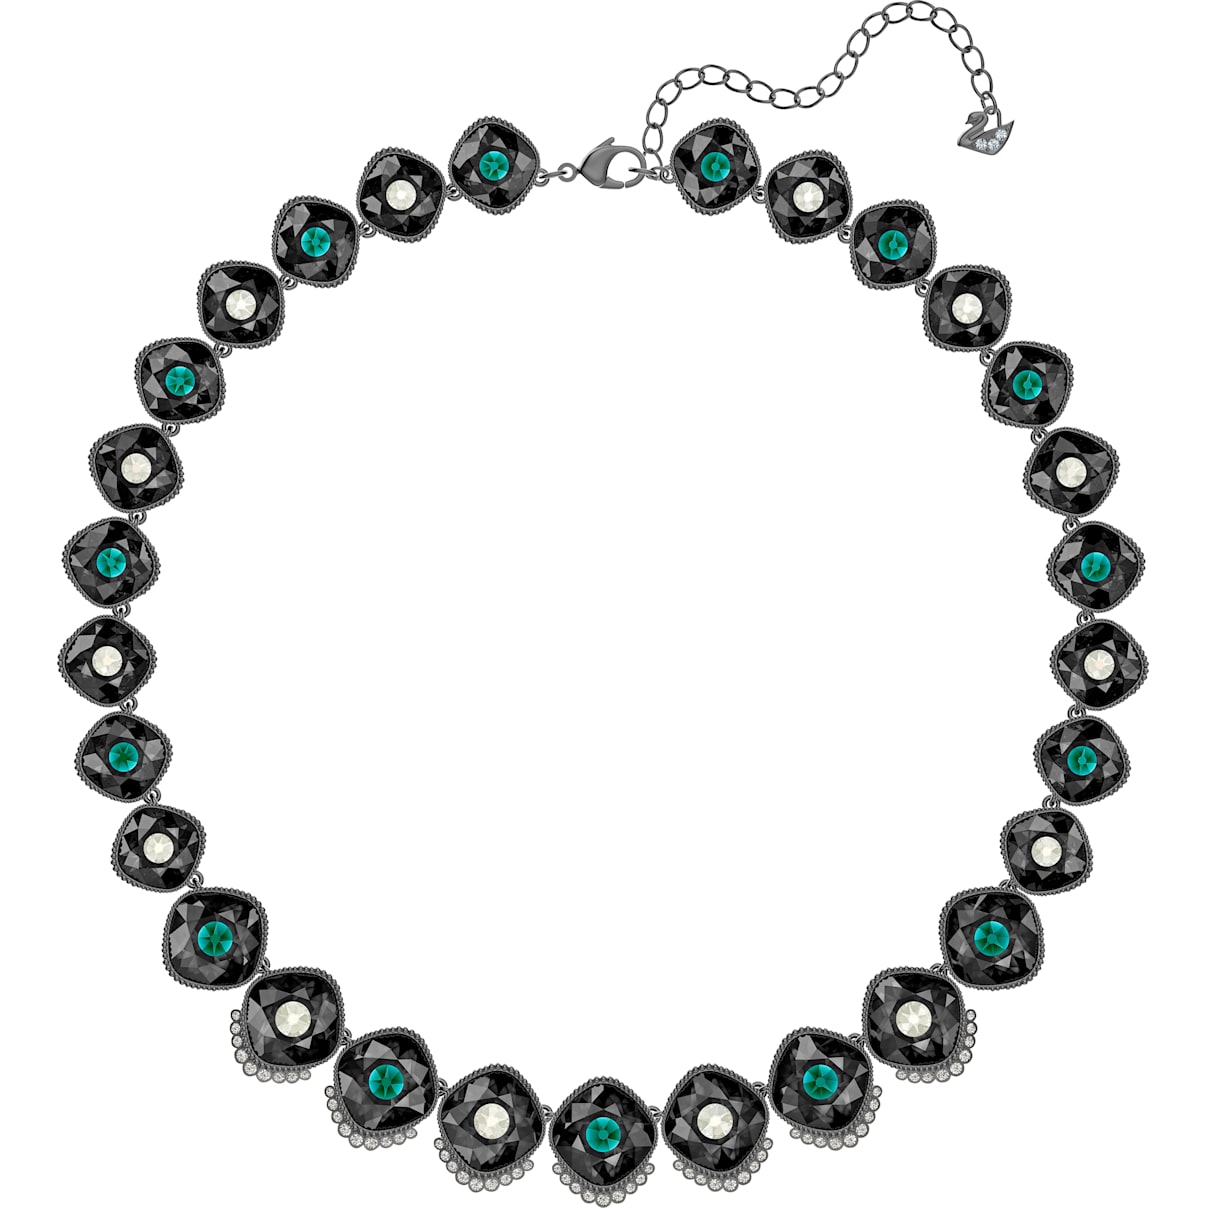 Swarovski Black Baroque Necklace, Multi-colored, Ruthenium plated